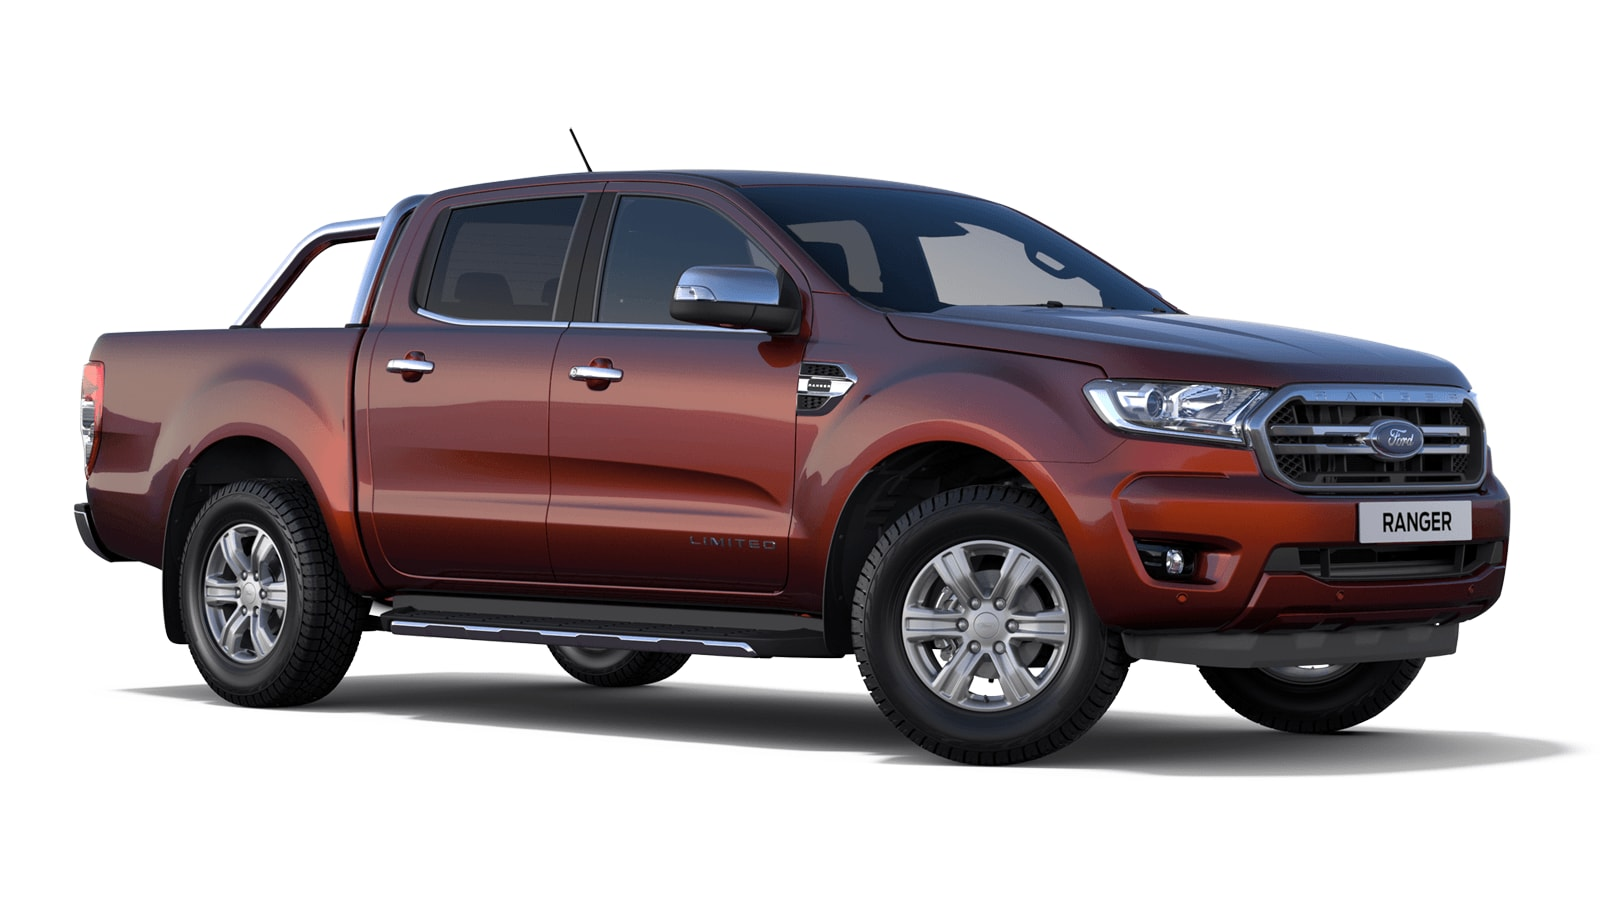 NEW RANGER Limited